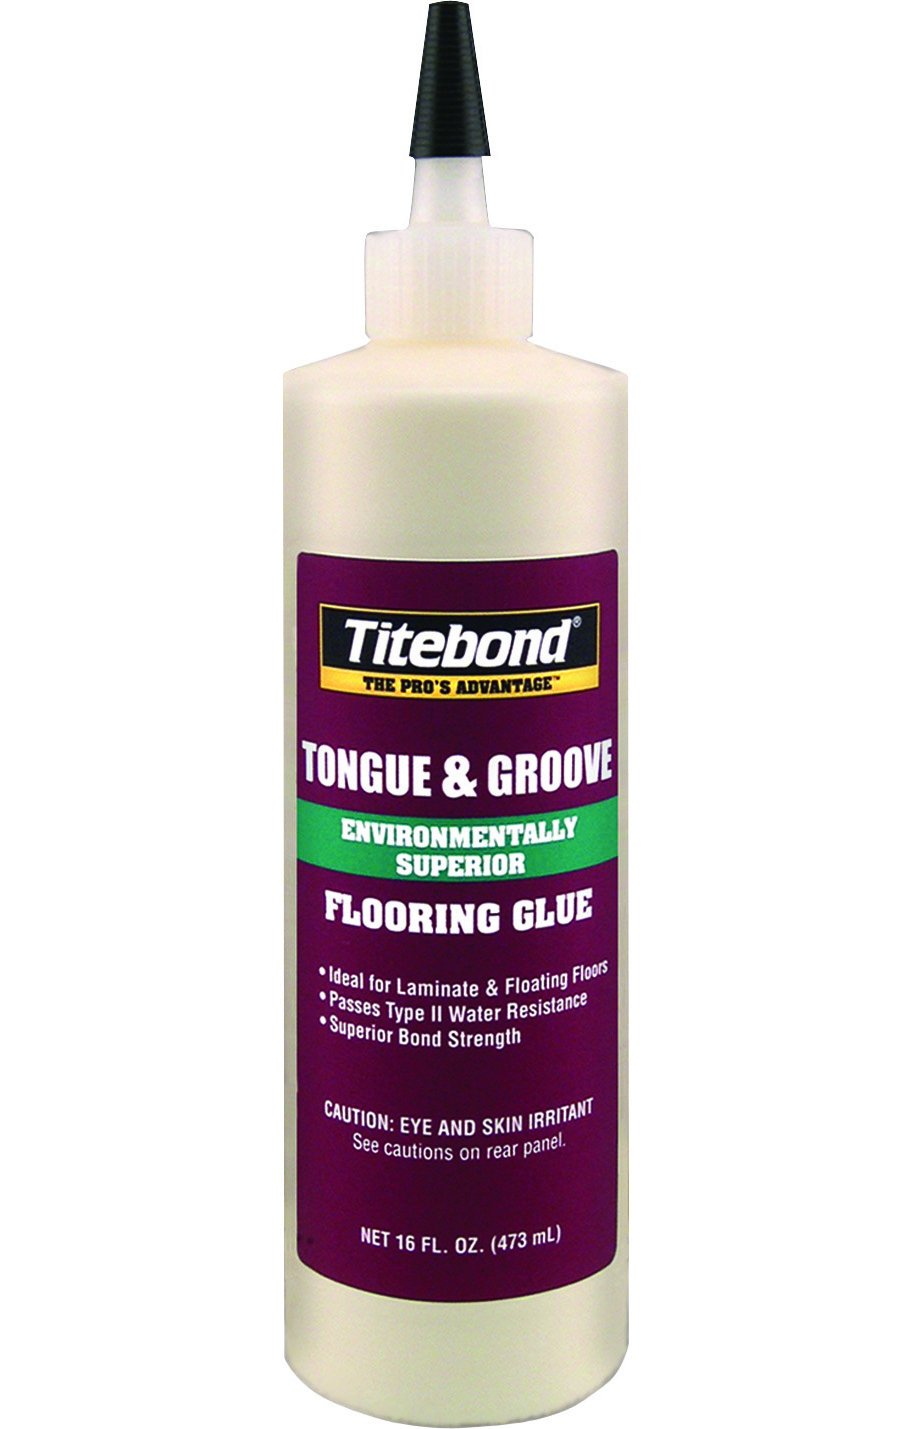 Titebond 2104 Tongue And Groove Glue Bottle 16 Oz Titebond Tongue And Groove Floating Adhesive Amazon Com